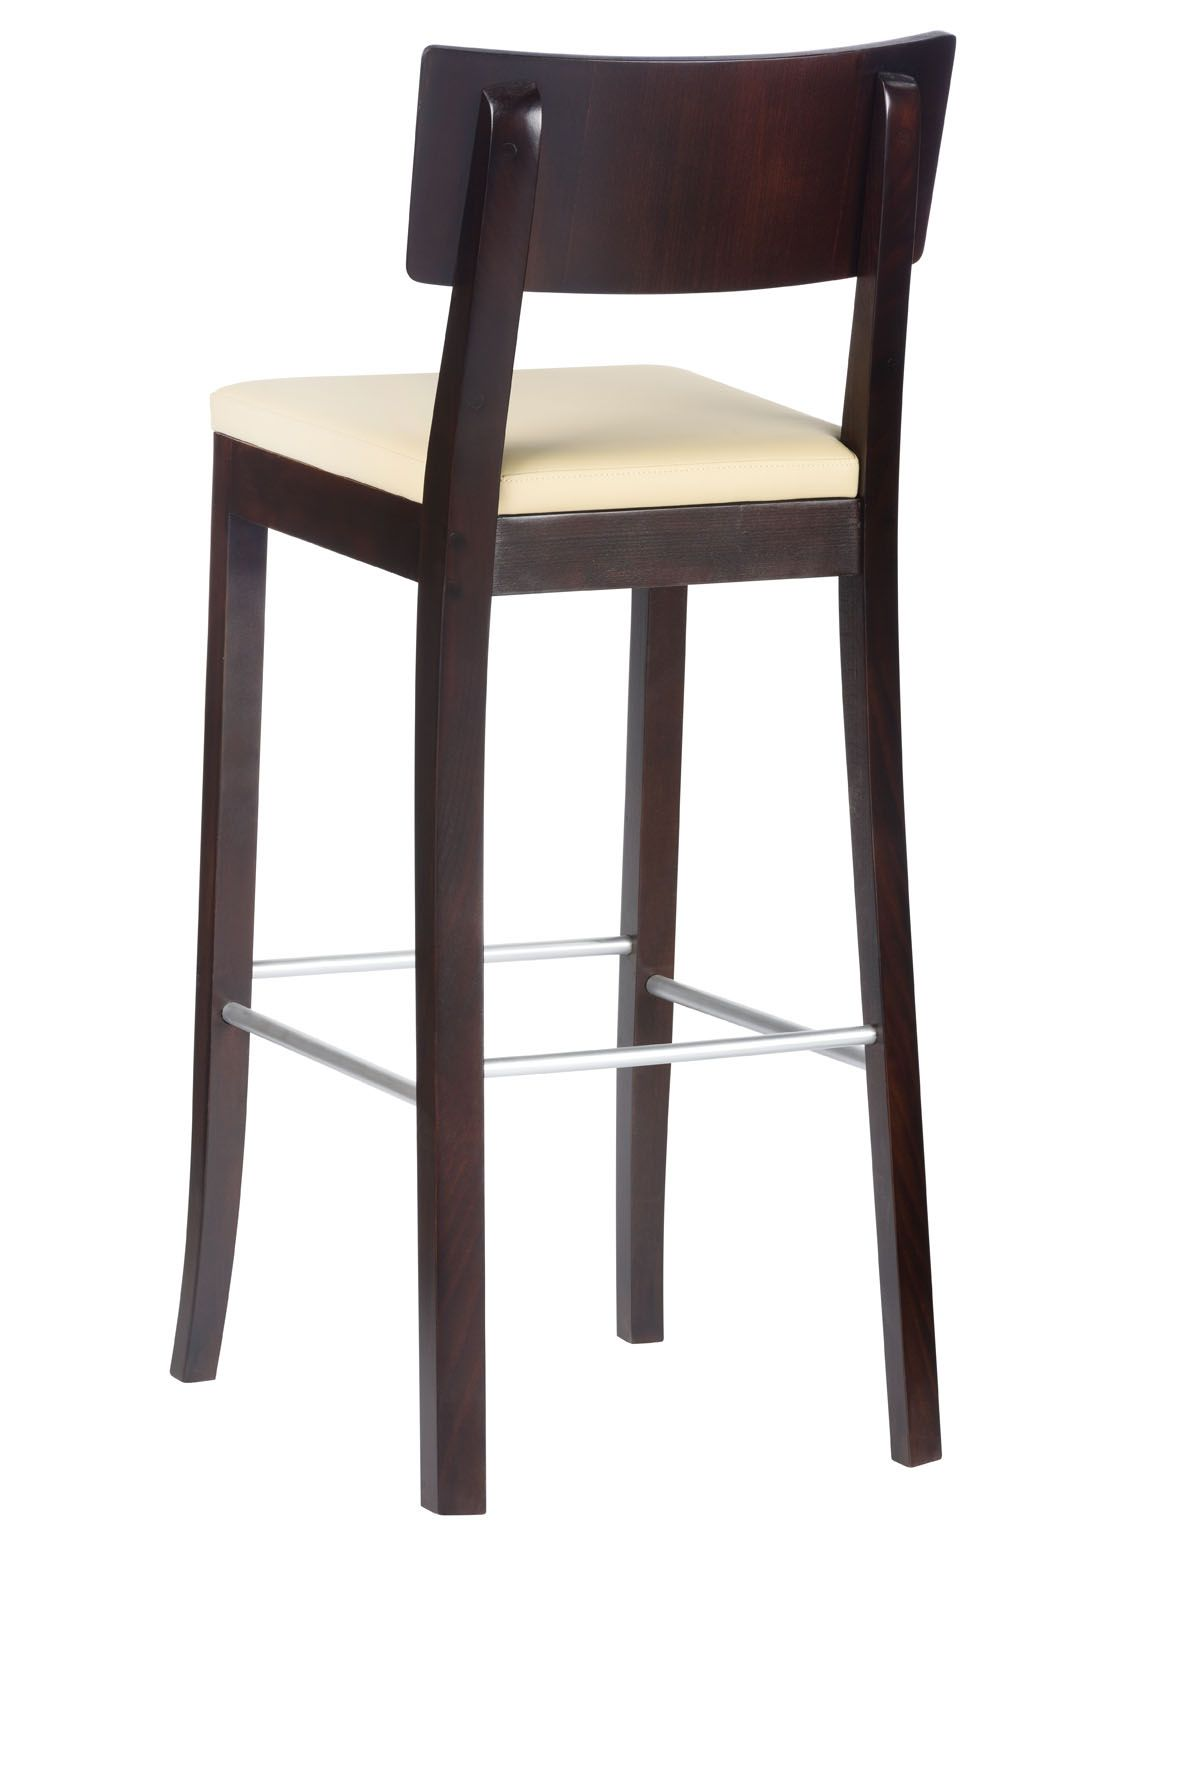 Comfortable Bar Stools Modern Wooden Comfortable Bar Stool Klosefurniture